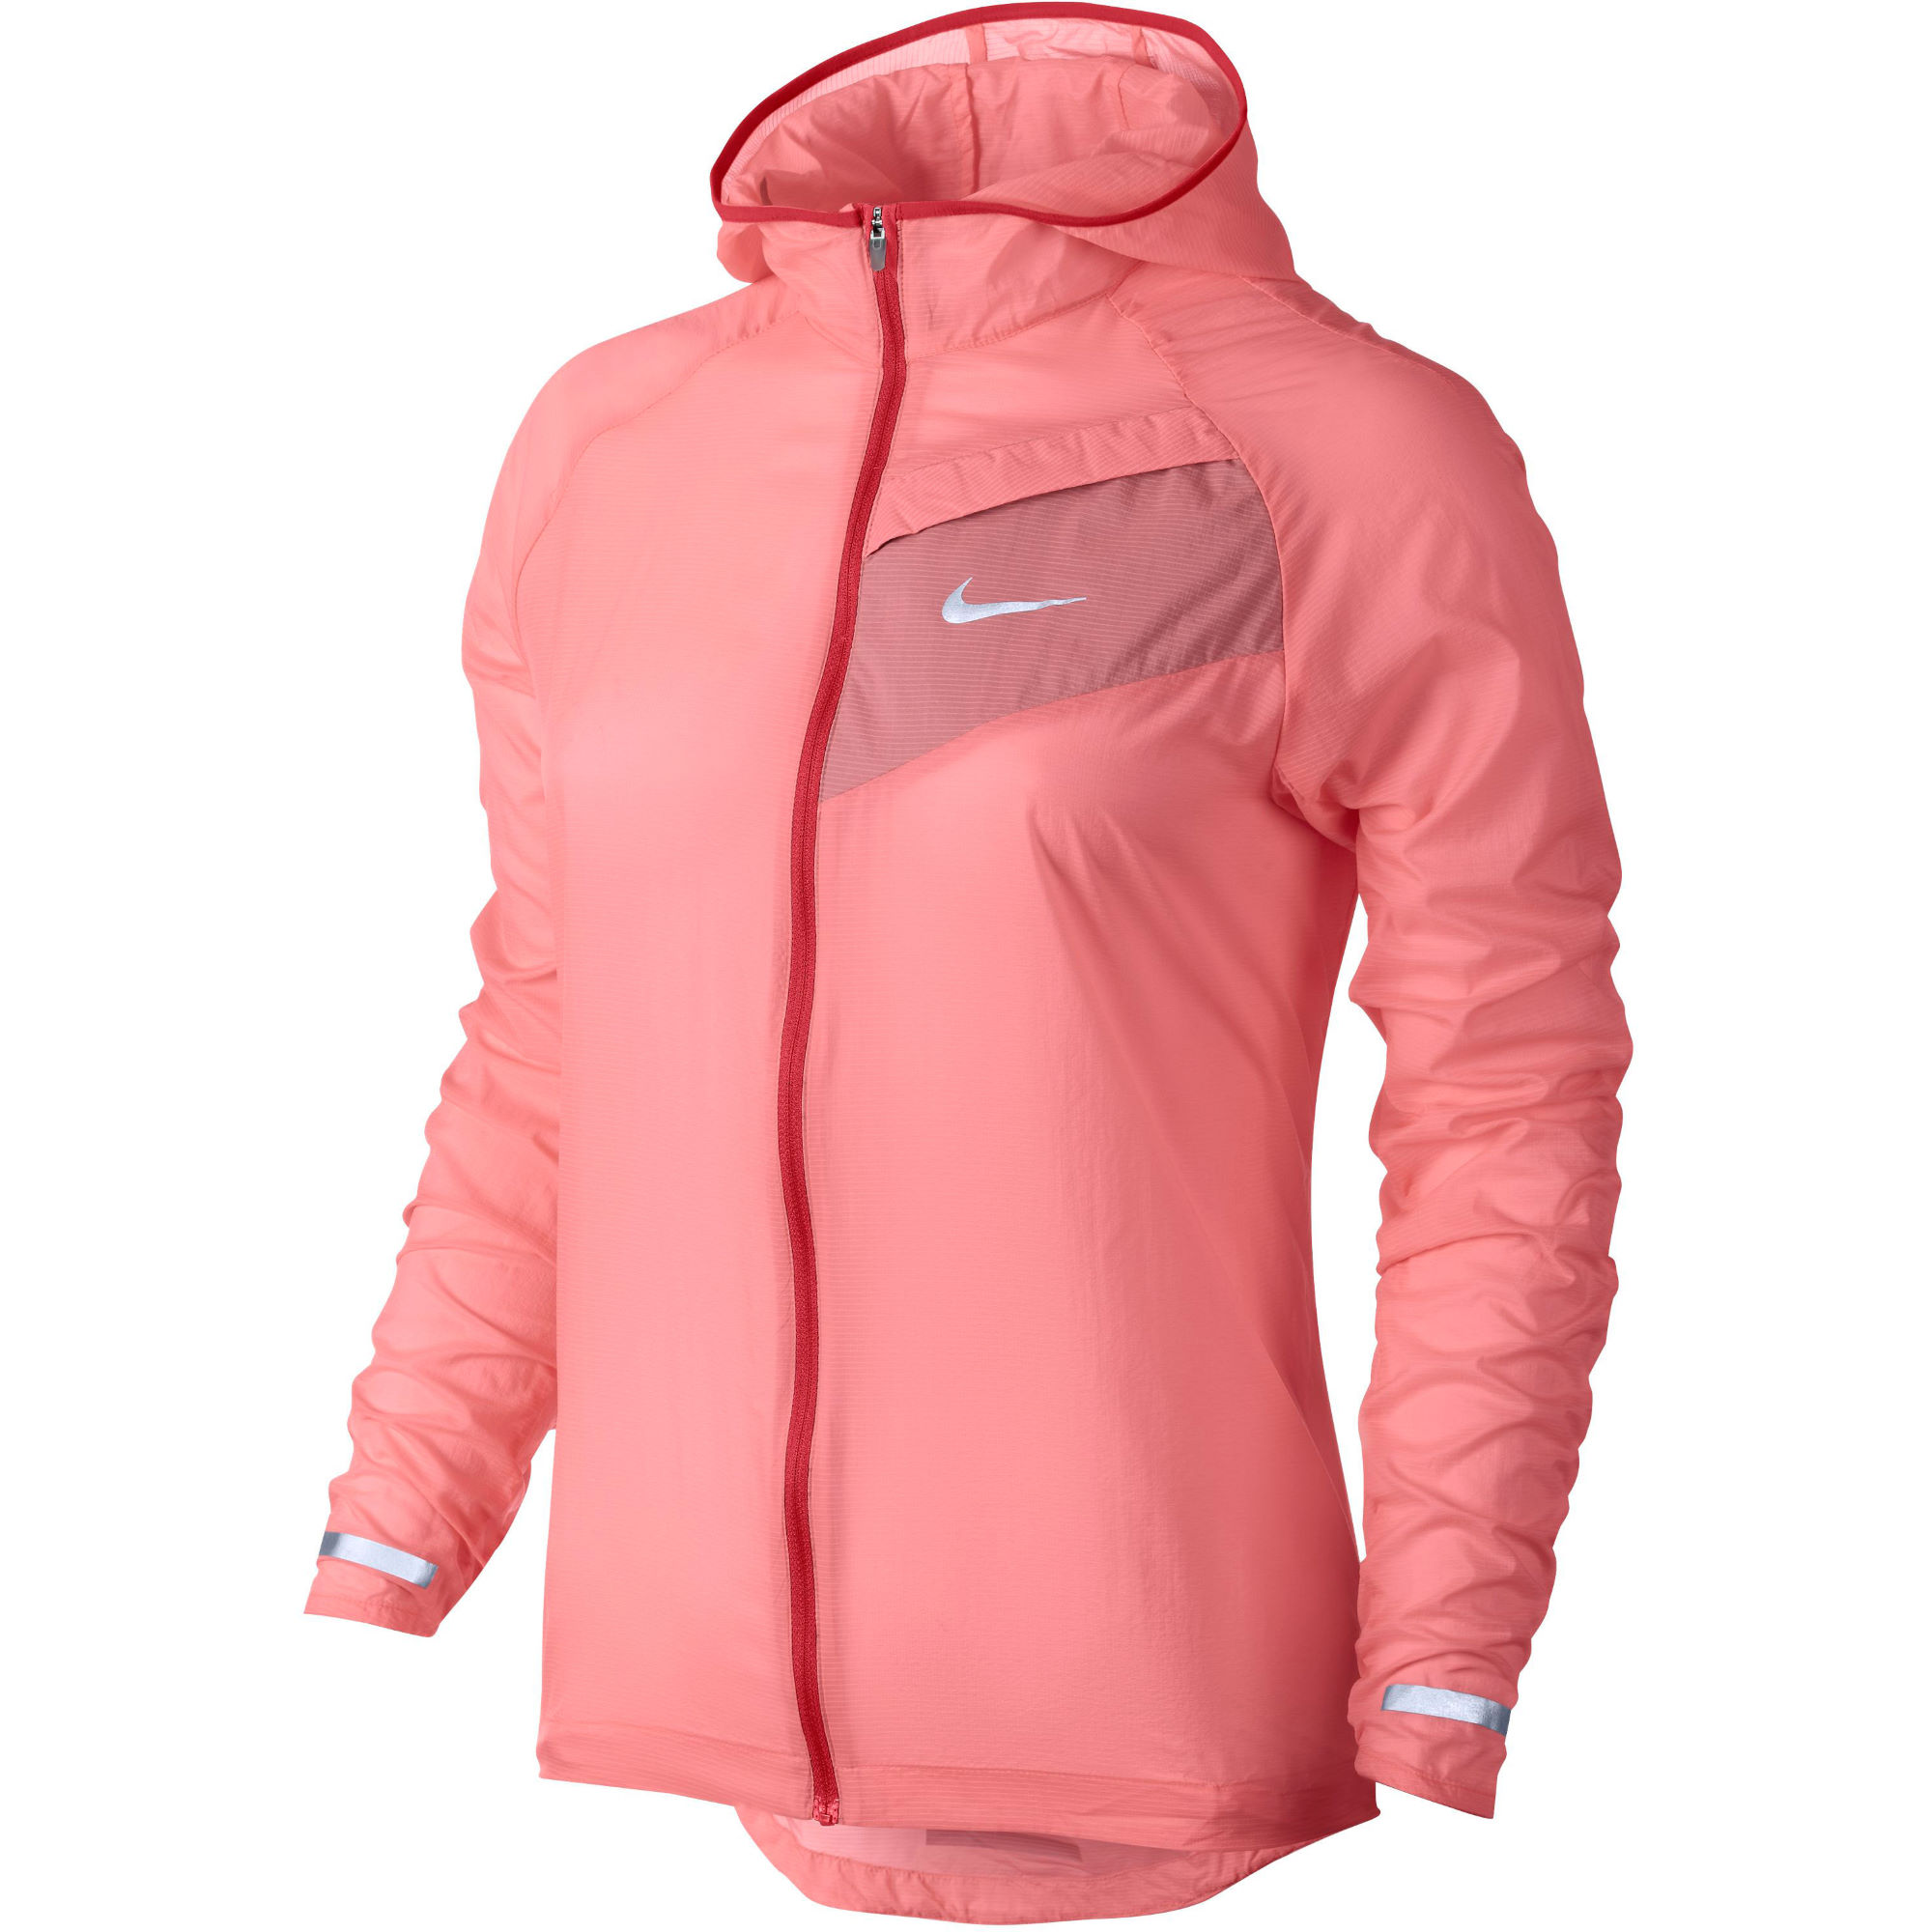 vestes de running coupe vent nike woman 39 s impossibly light jacket su15 wiggle france. Black Bedroom Furniture Sets. Home Design Ideas